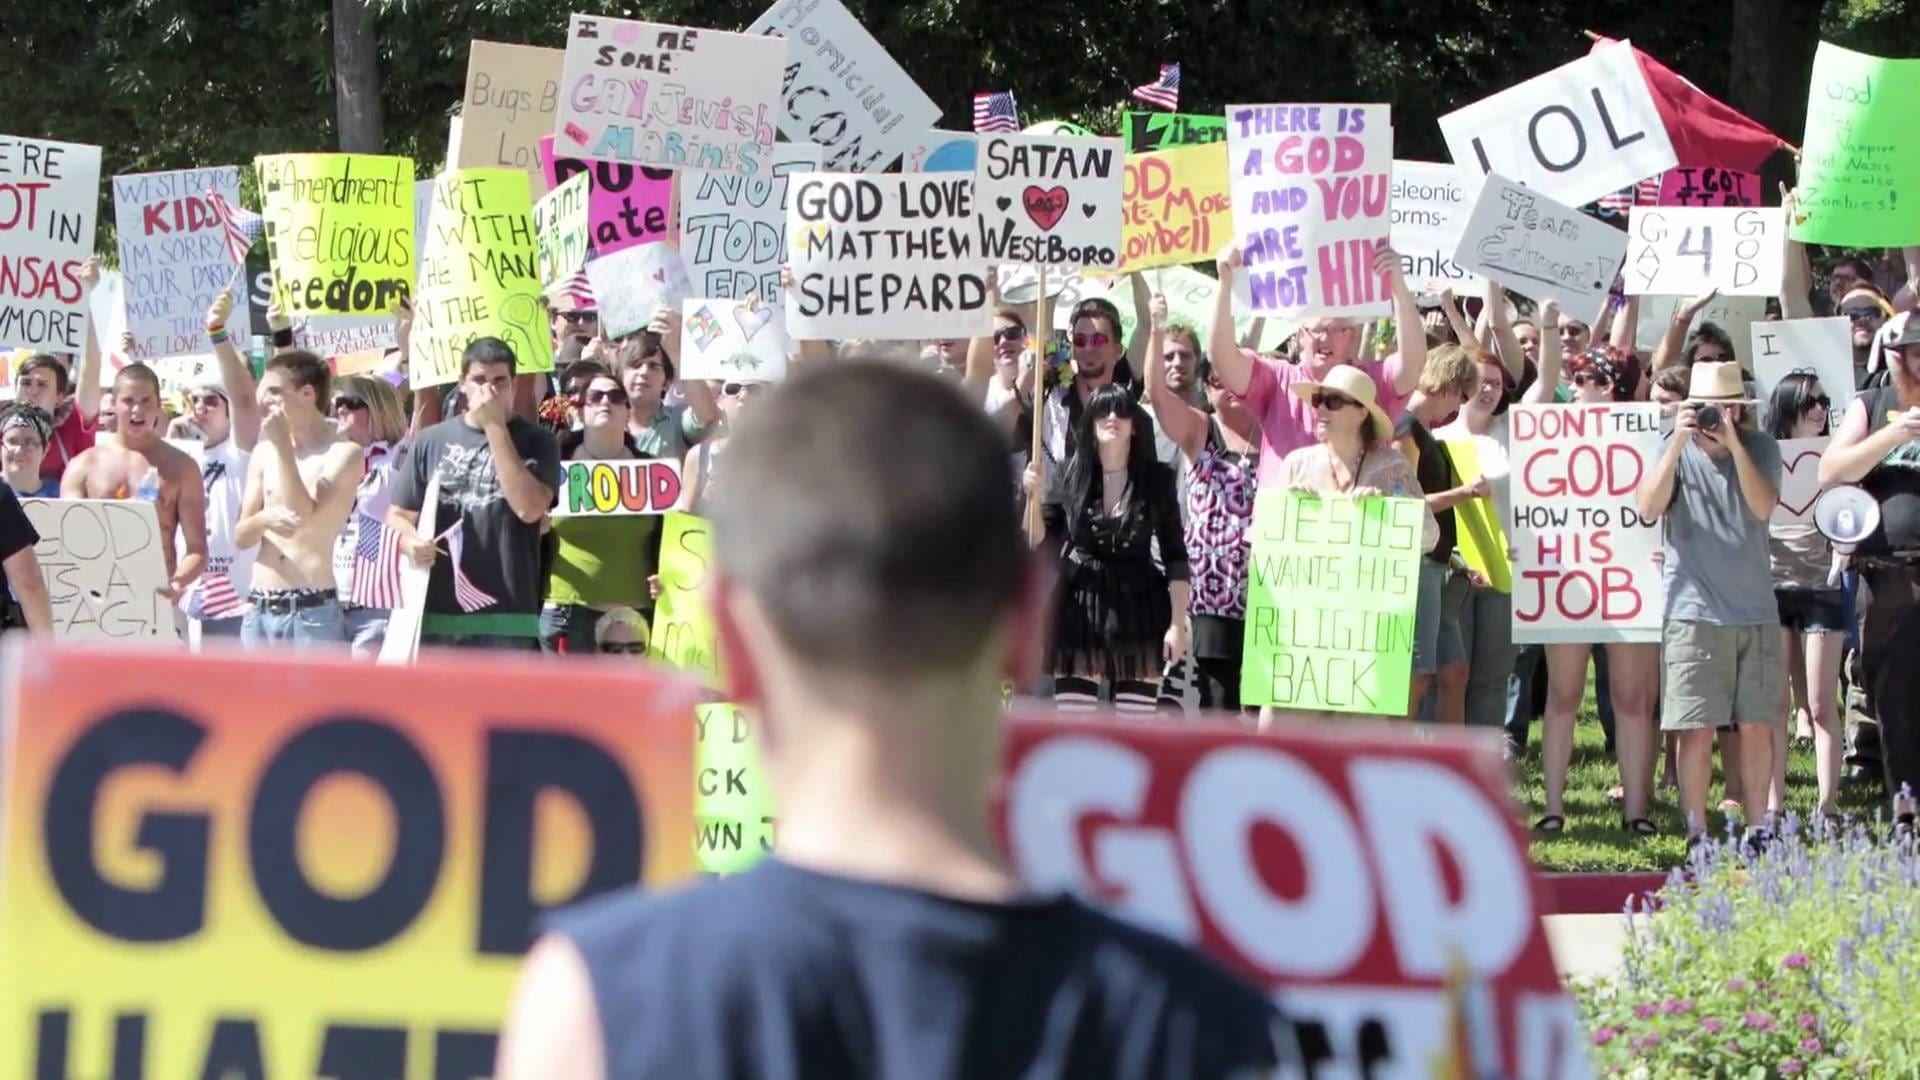 the most hated family in america The most hated family in america (2007) - louis theroux bbc documentary on the westboro baptist church and their beliefs also a very good look on the indoctrination.